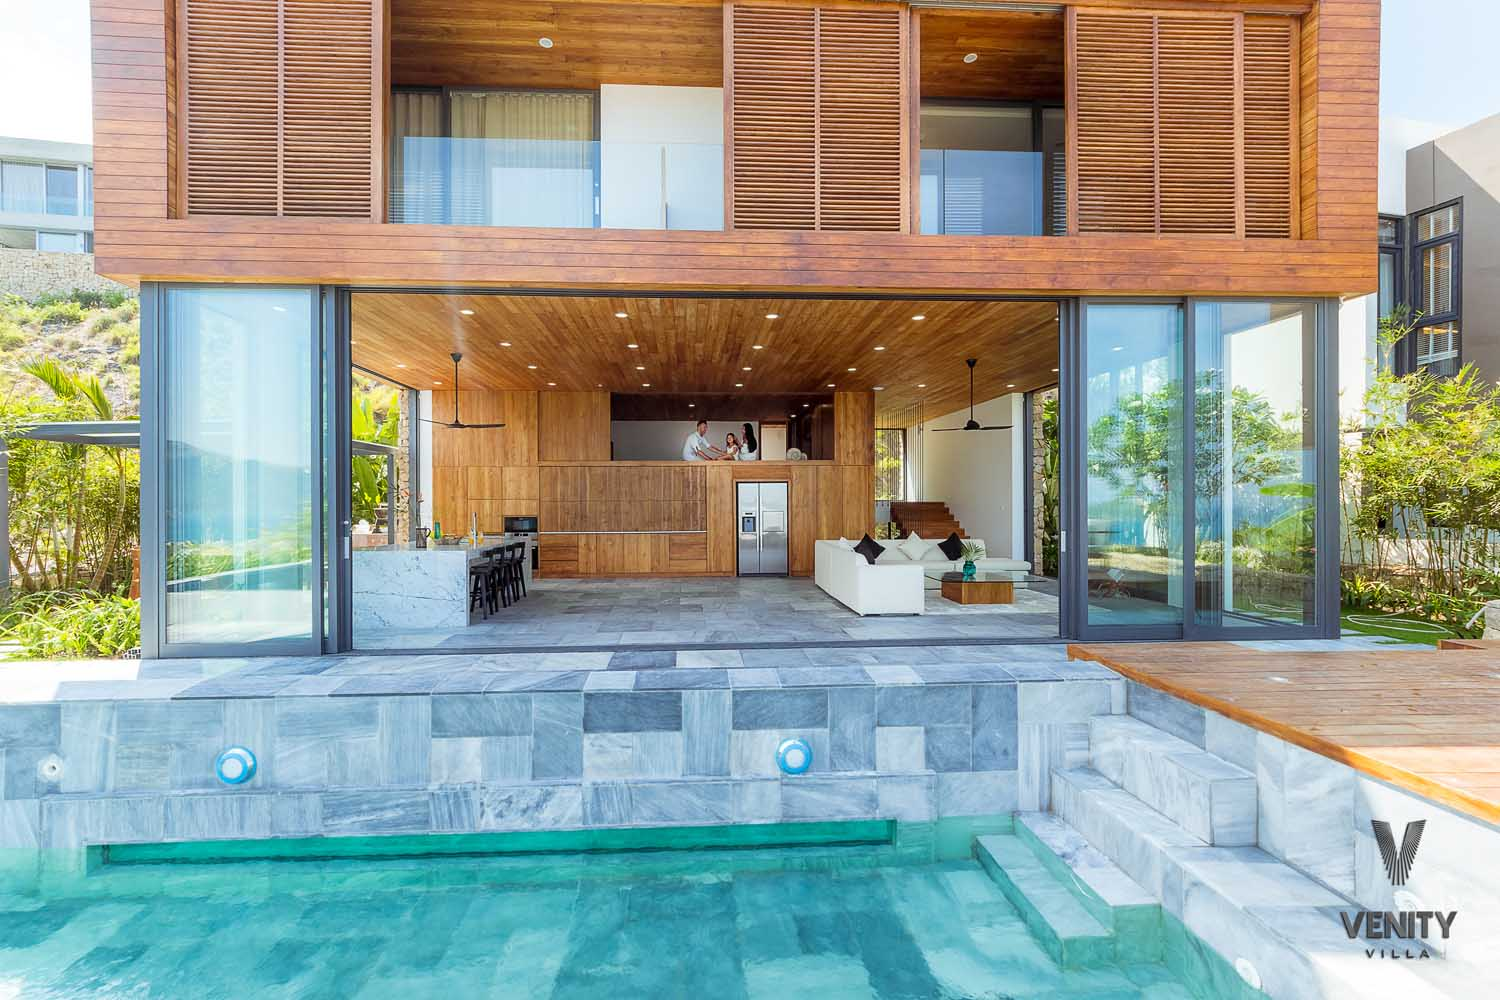 Front view of Venity Villa Nha Trang - photography by Halo Digital Media - Photographer in Vietnam